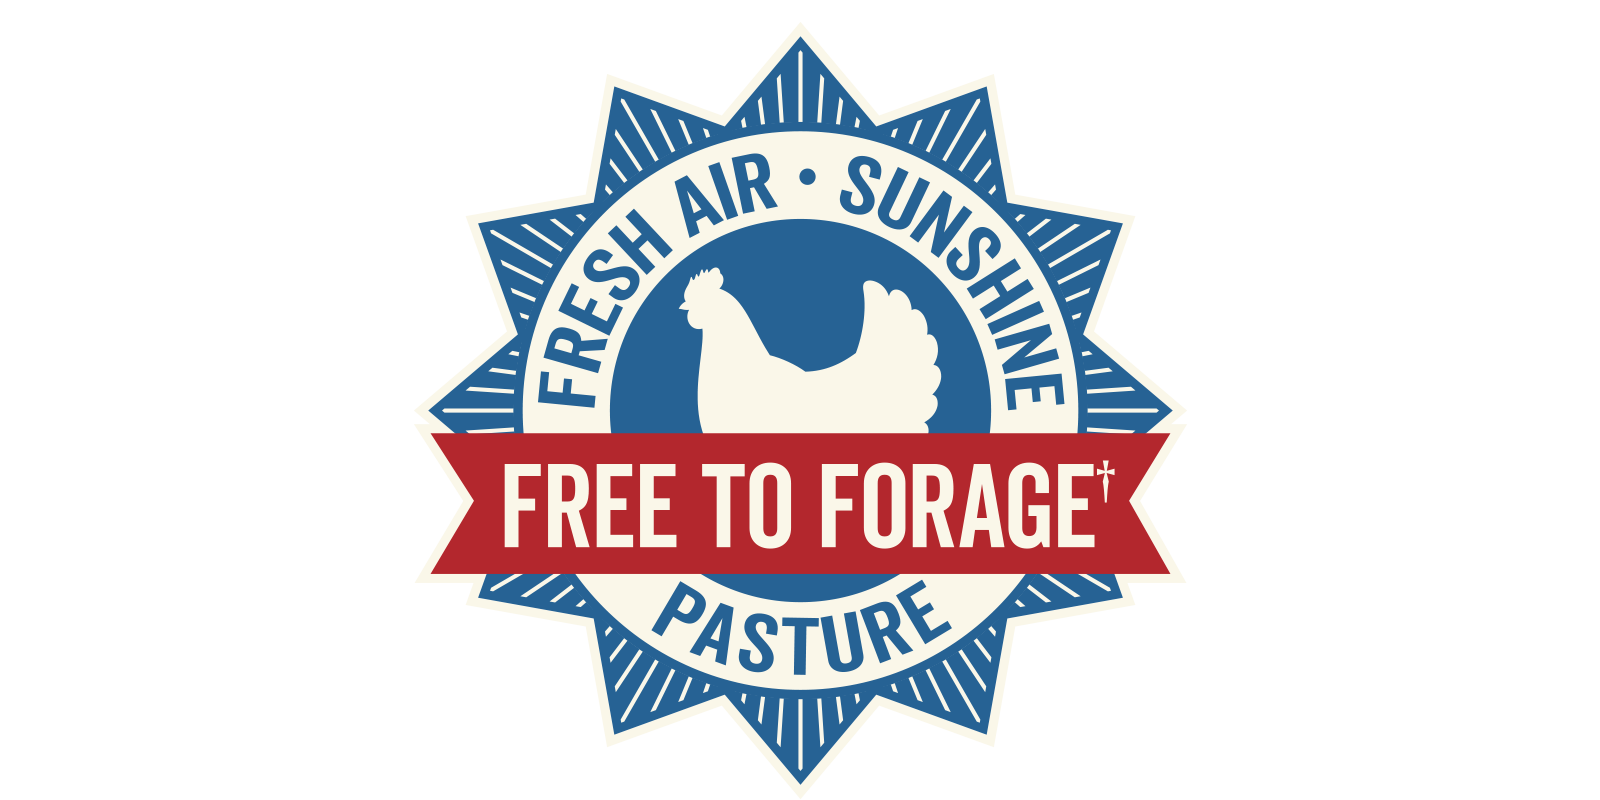 <p>Our Free to Forage seal on our egg cartons means Organic Valley hens have been given fresh air, sunshine and organic pasture.</p>